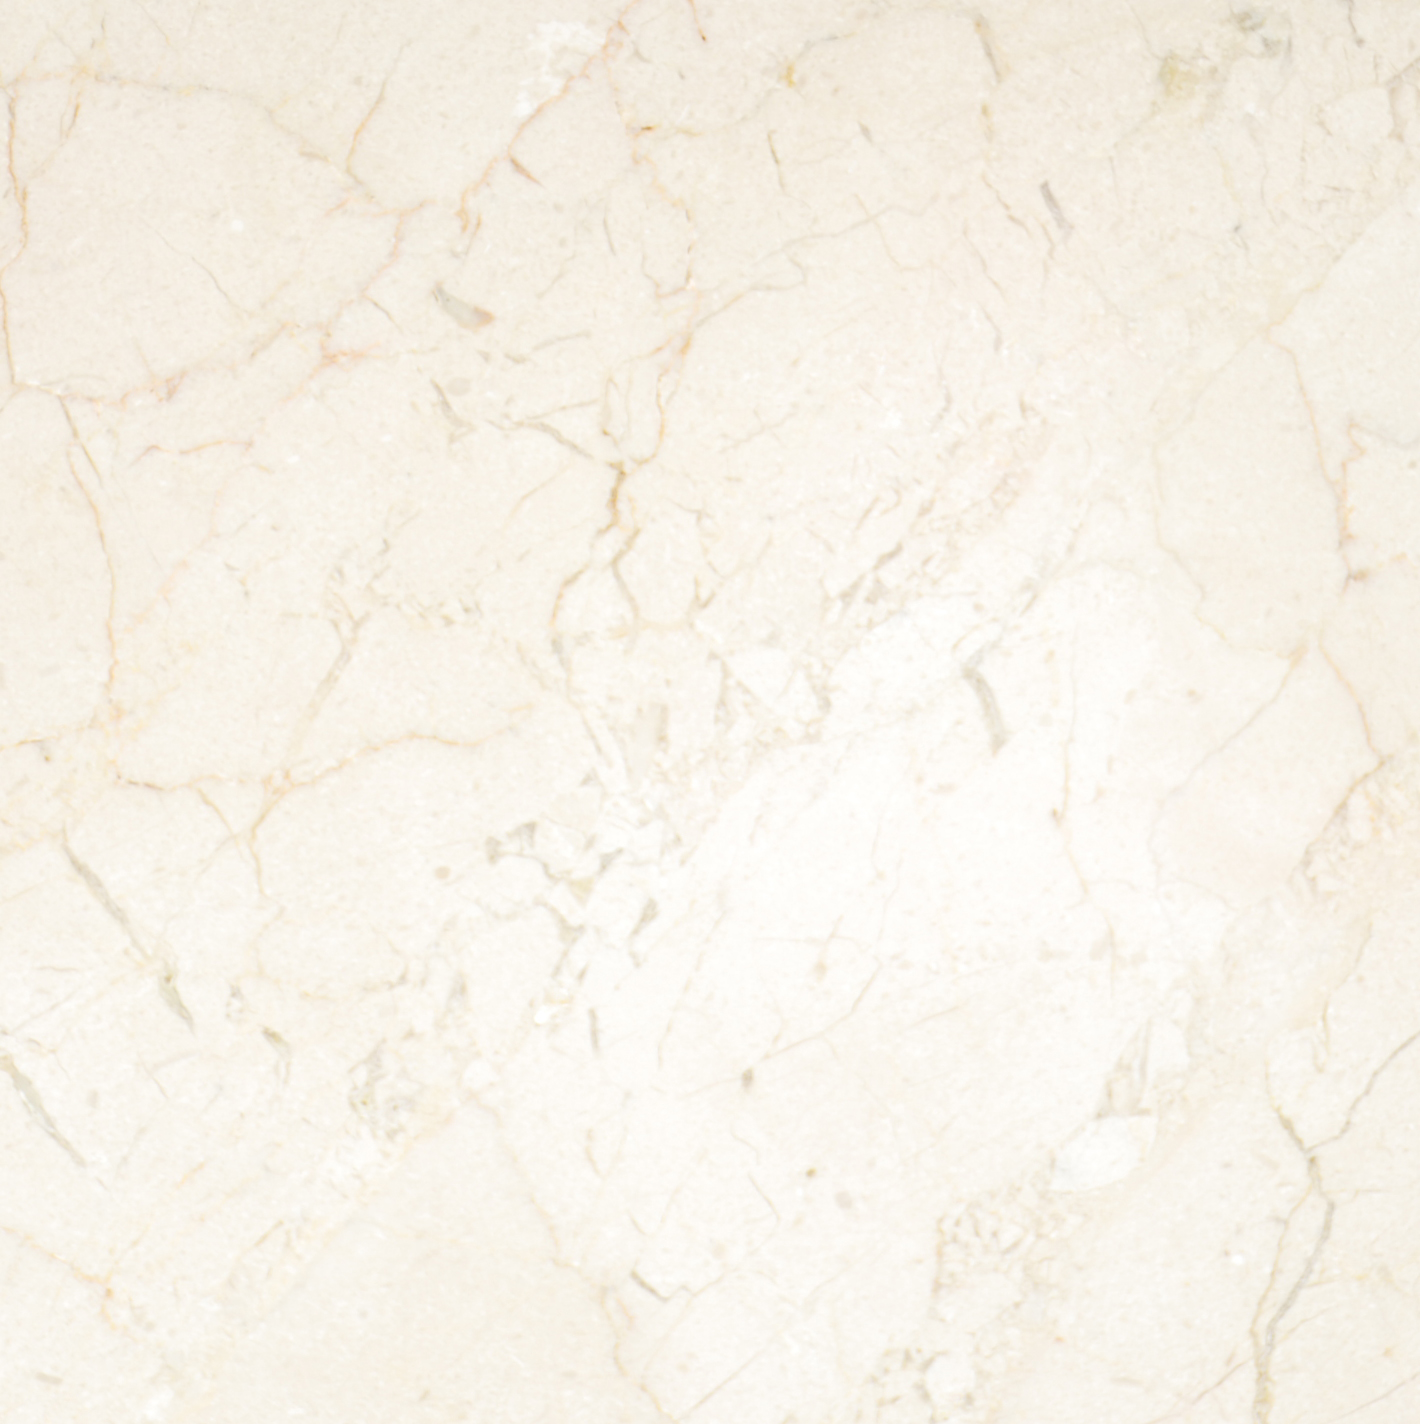 Crema Marfil Antique Marble Velvet Moon Stones South